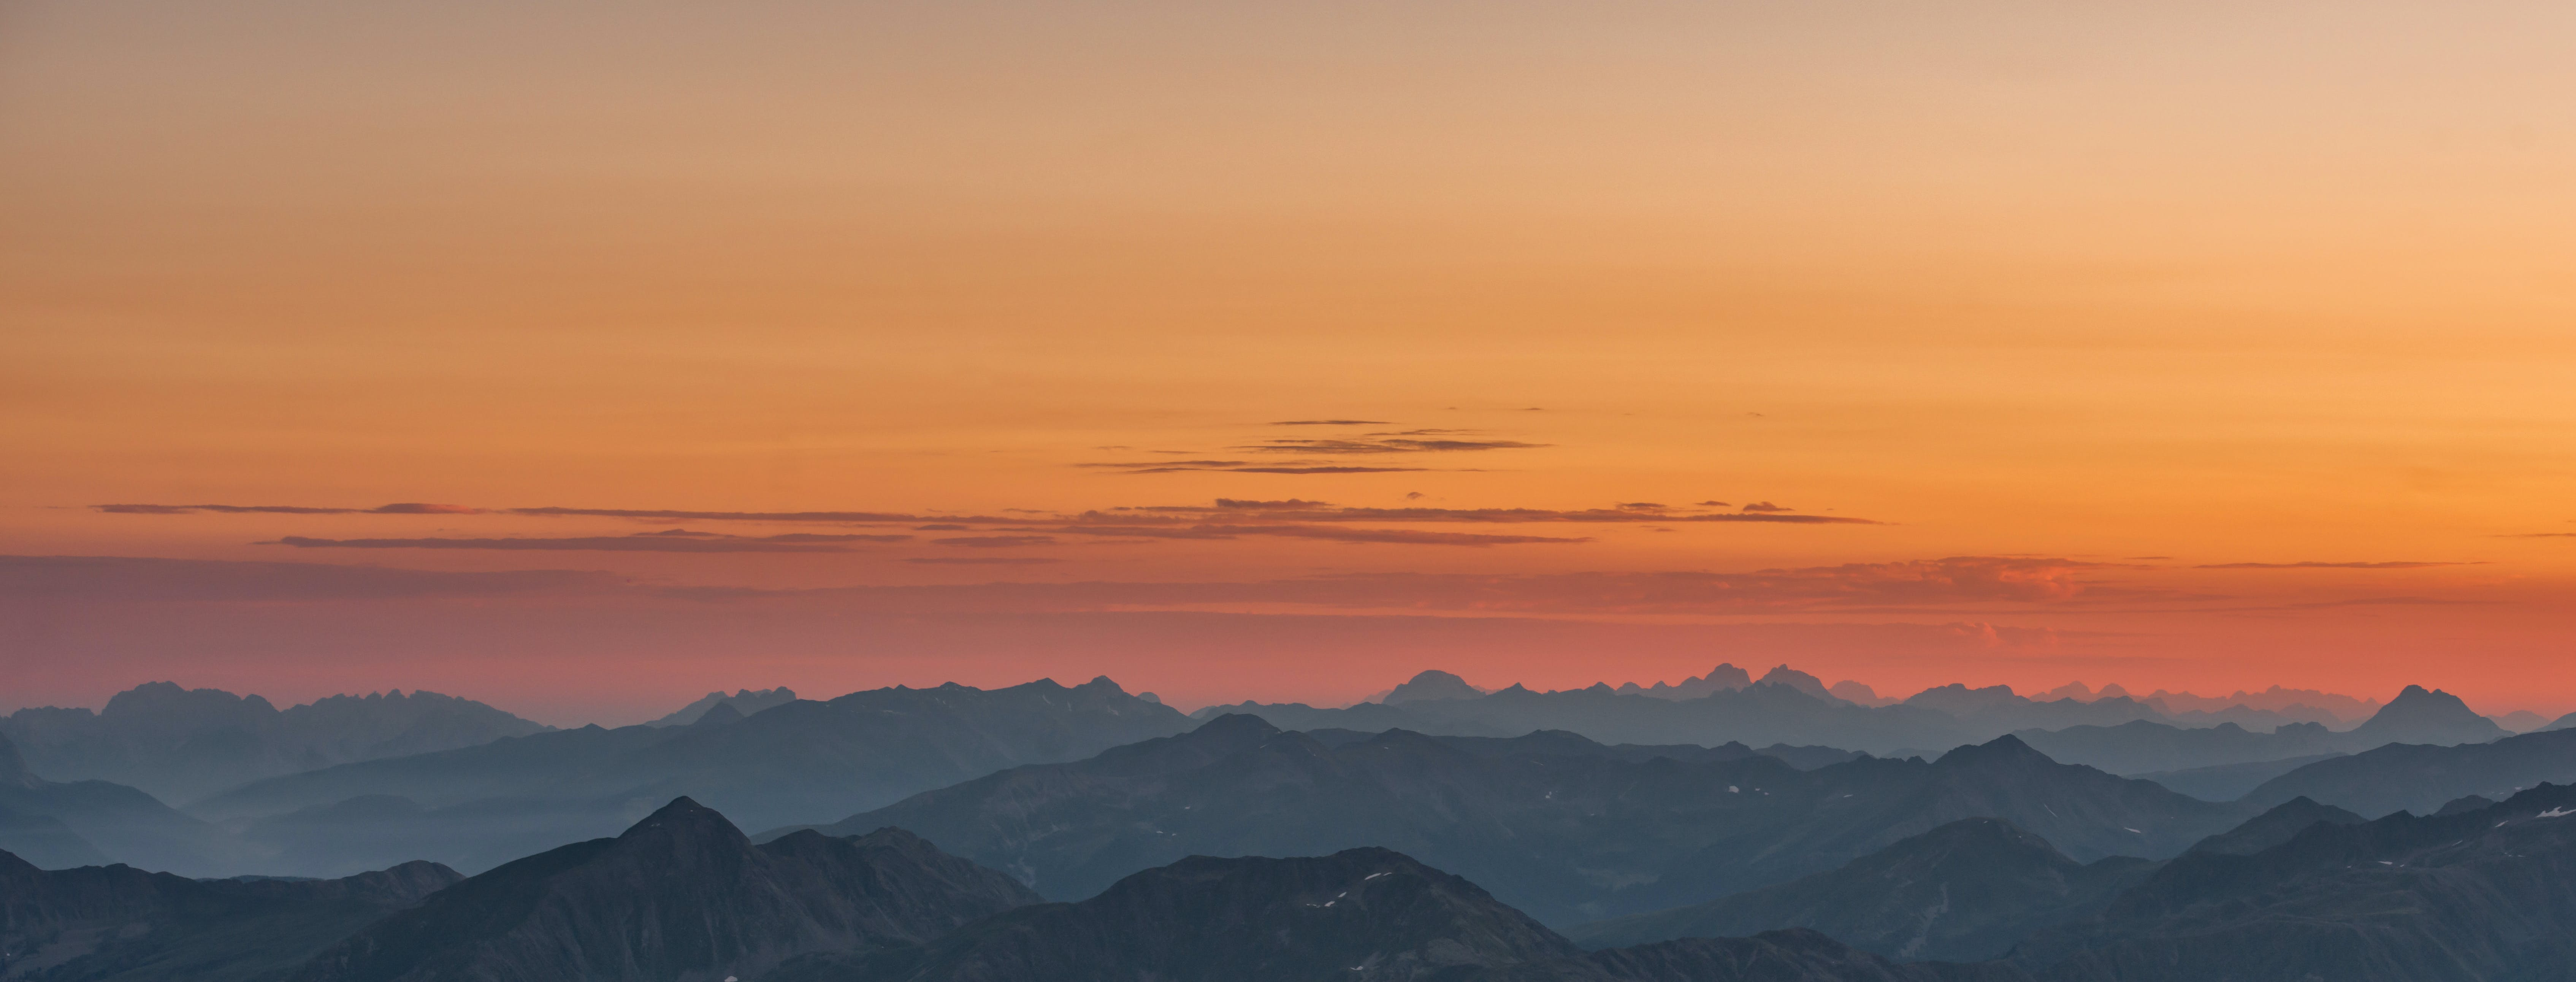 Areal View of Mountains during Sunset